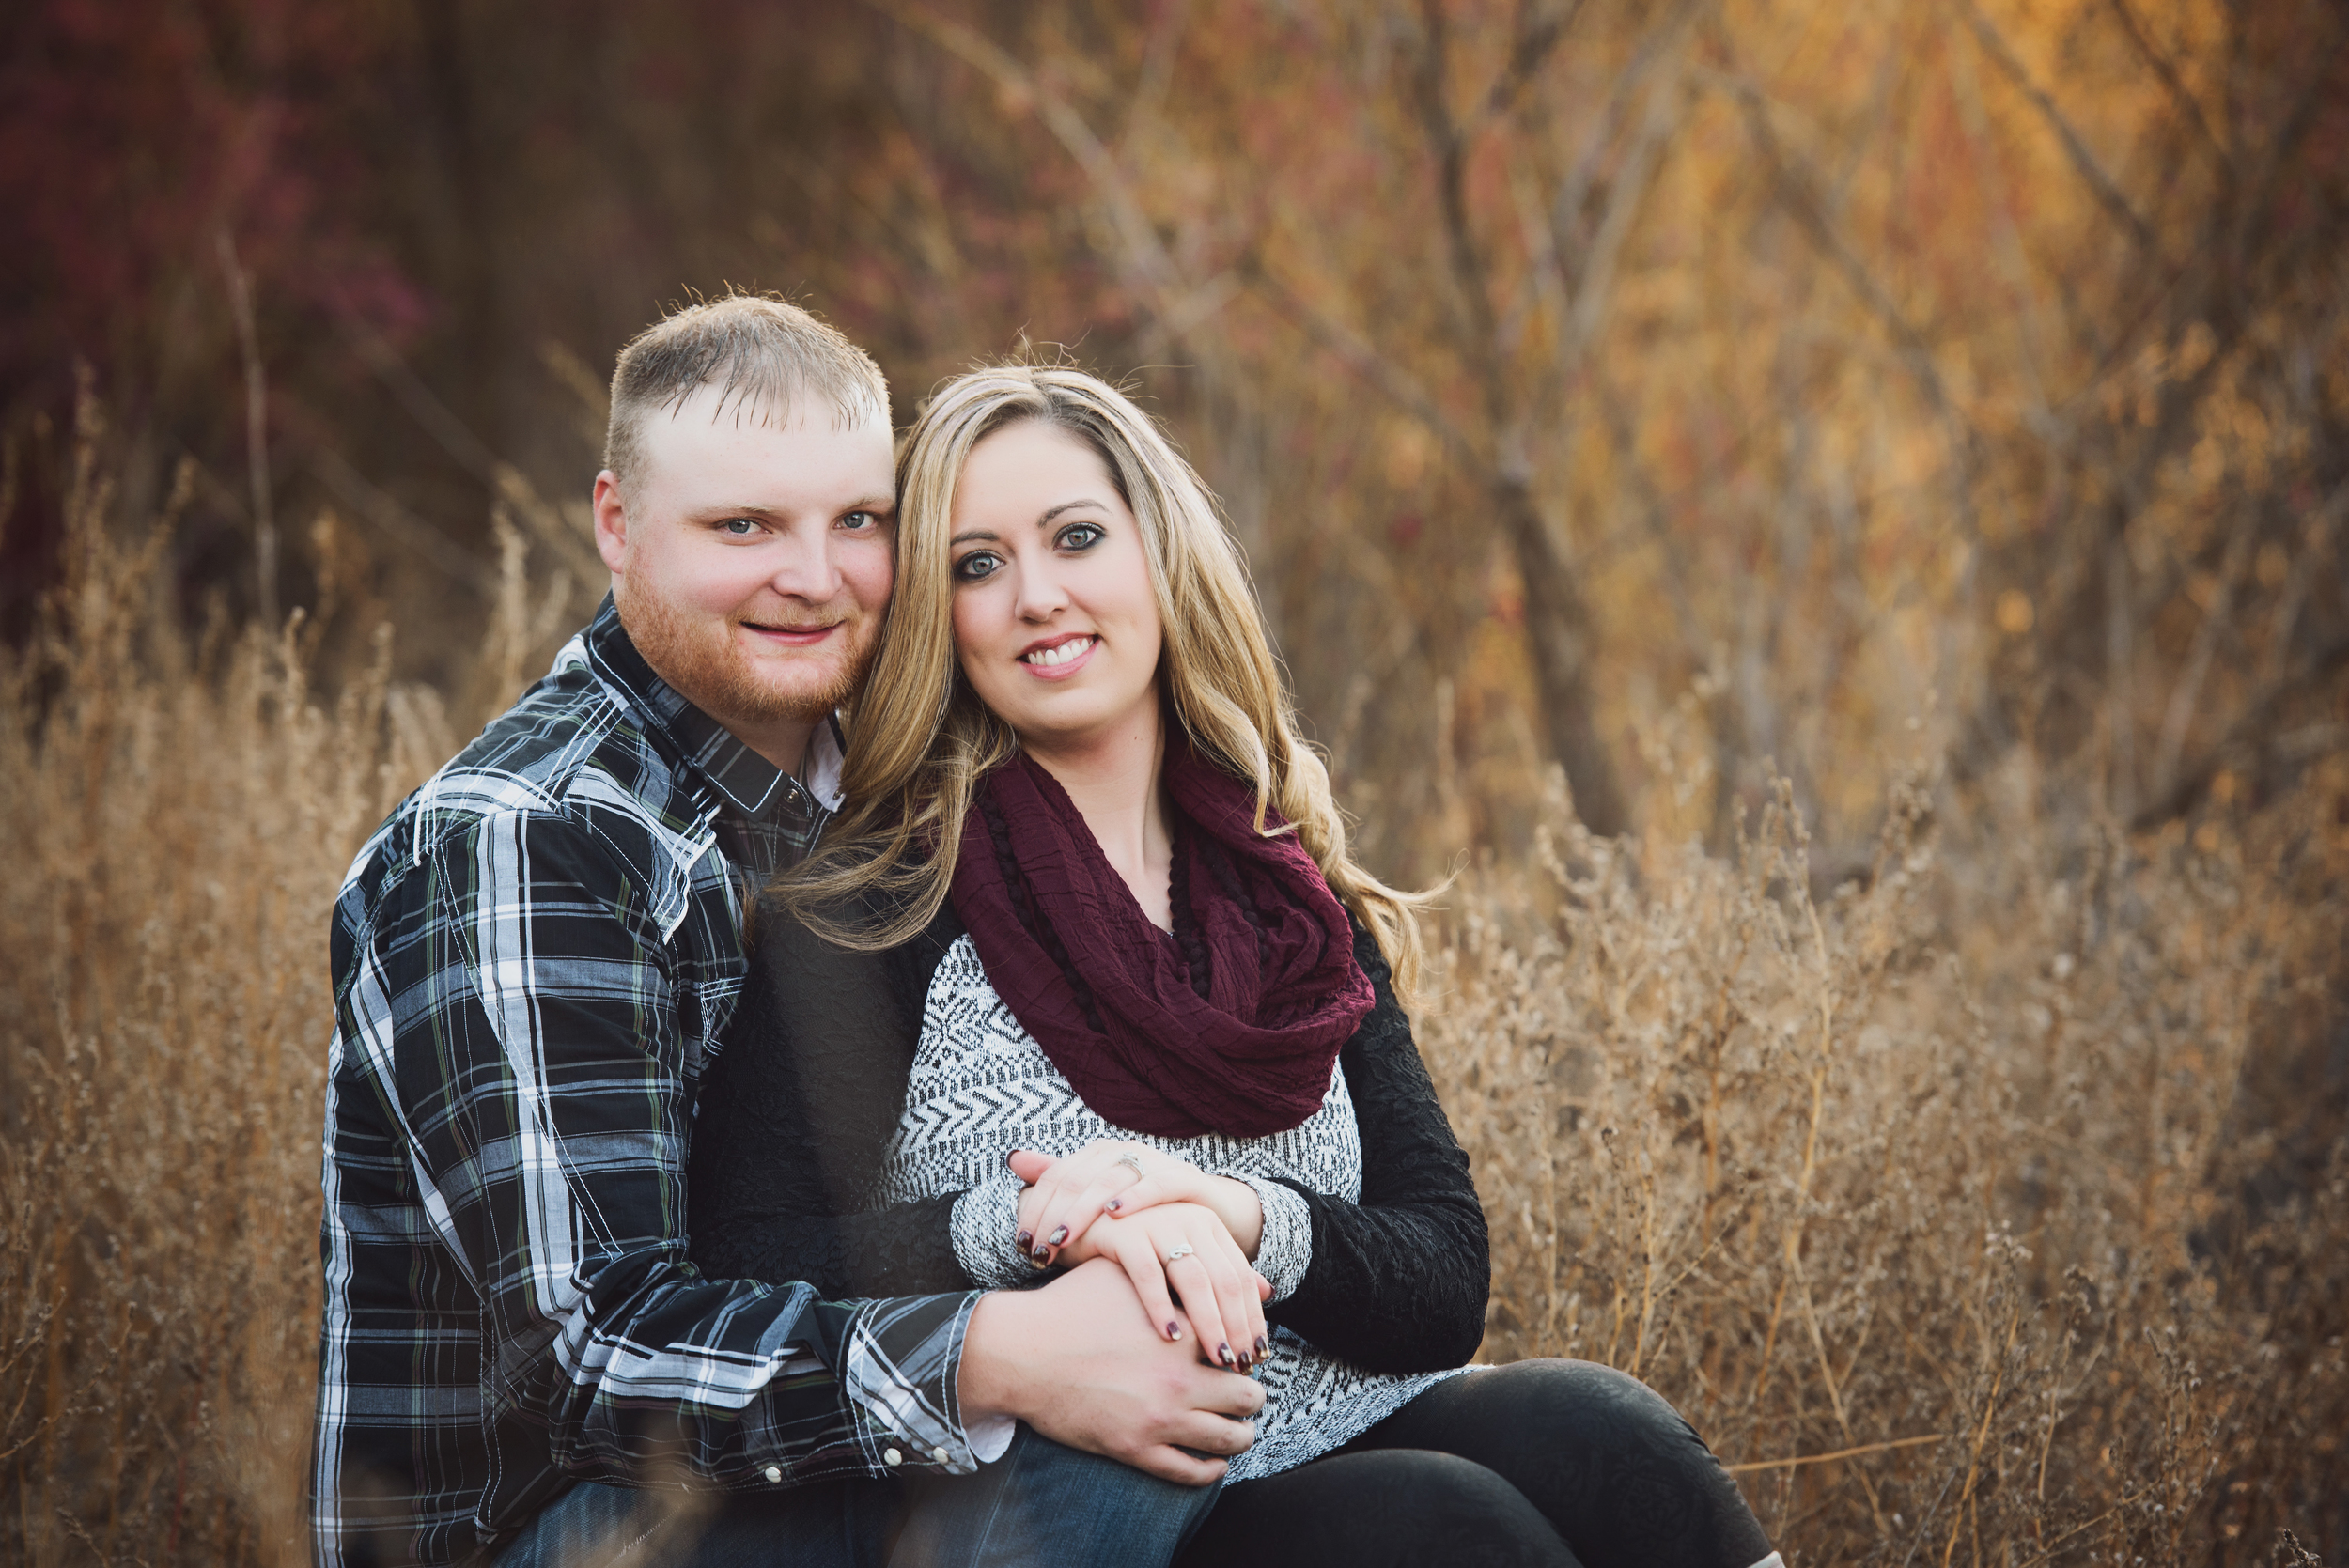 engagement-photography-gardencity-ks-2.jpg